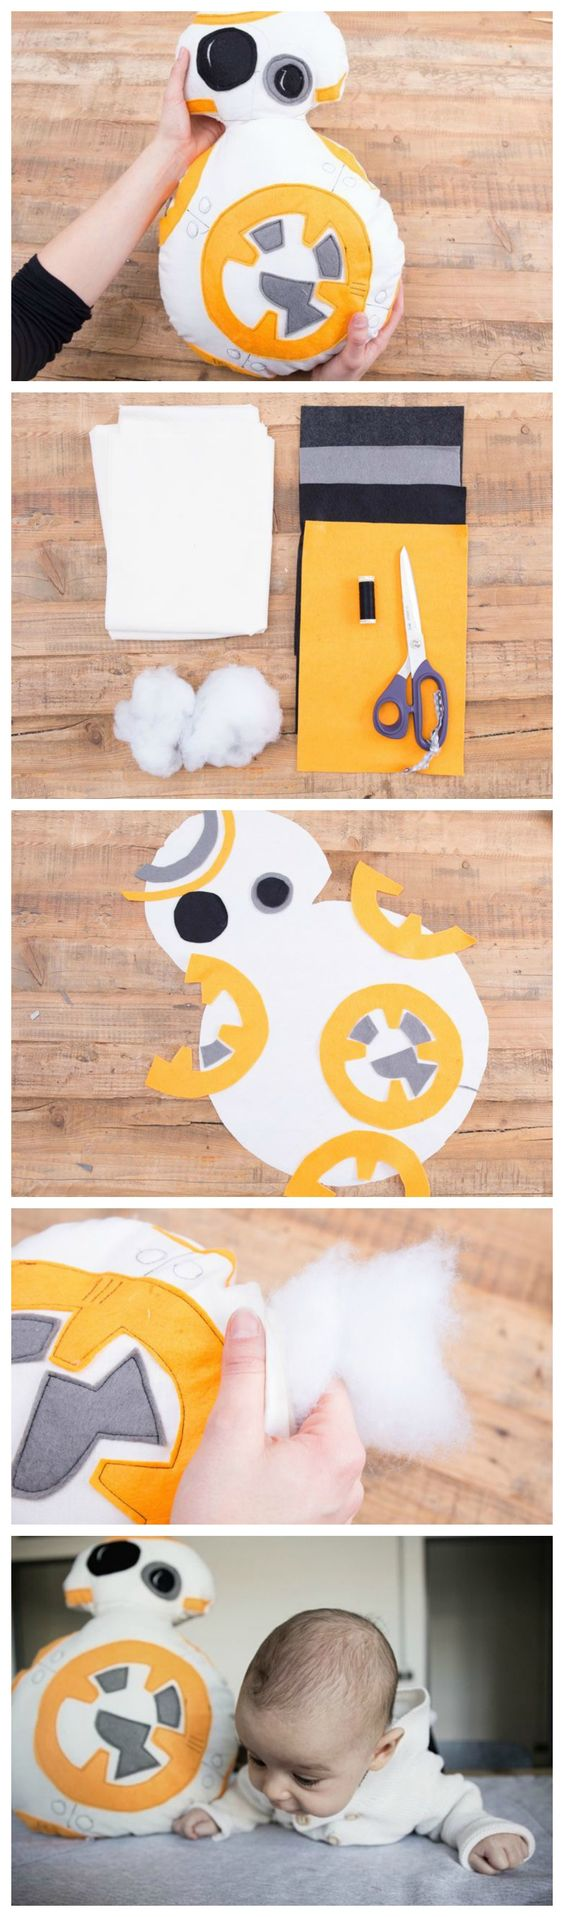 Kostenlose Nähanleitung: Star Wars Droide BB-8 Kissen nähen / free star wars sewing diy: how to sew a droide BB-8 cushion via DaWanda.com